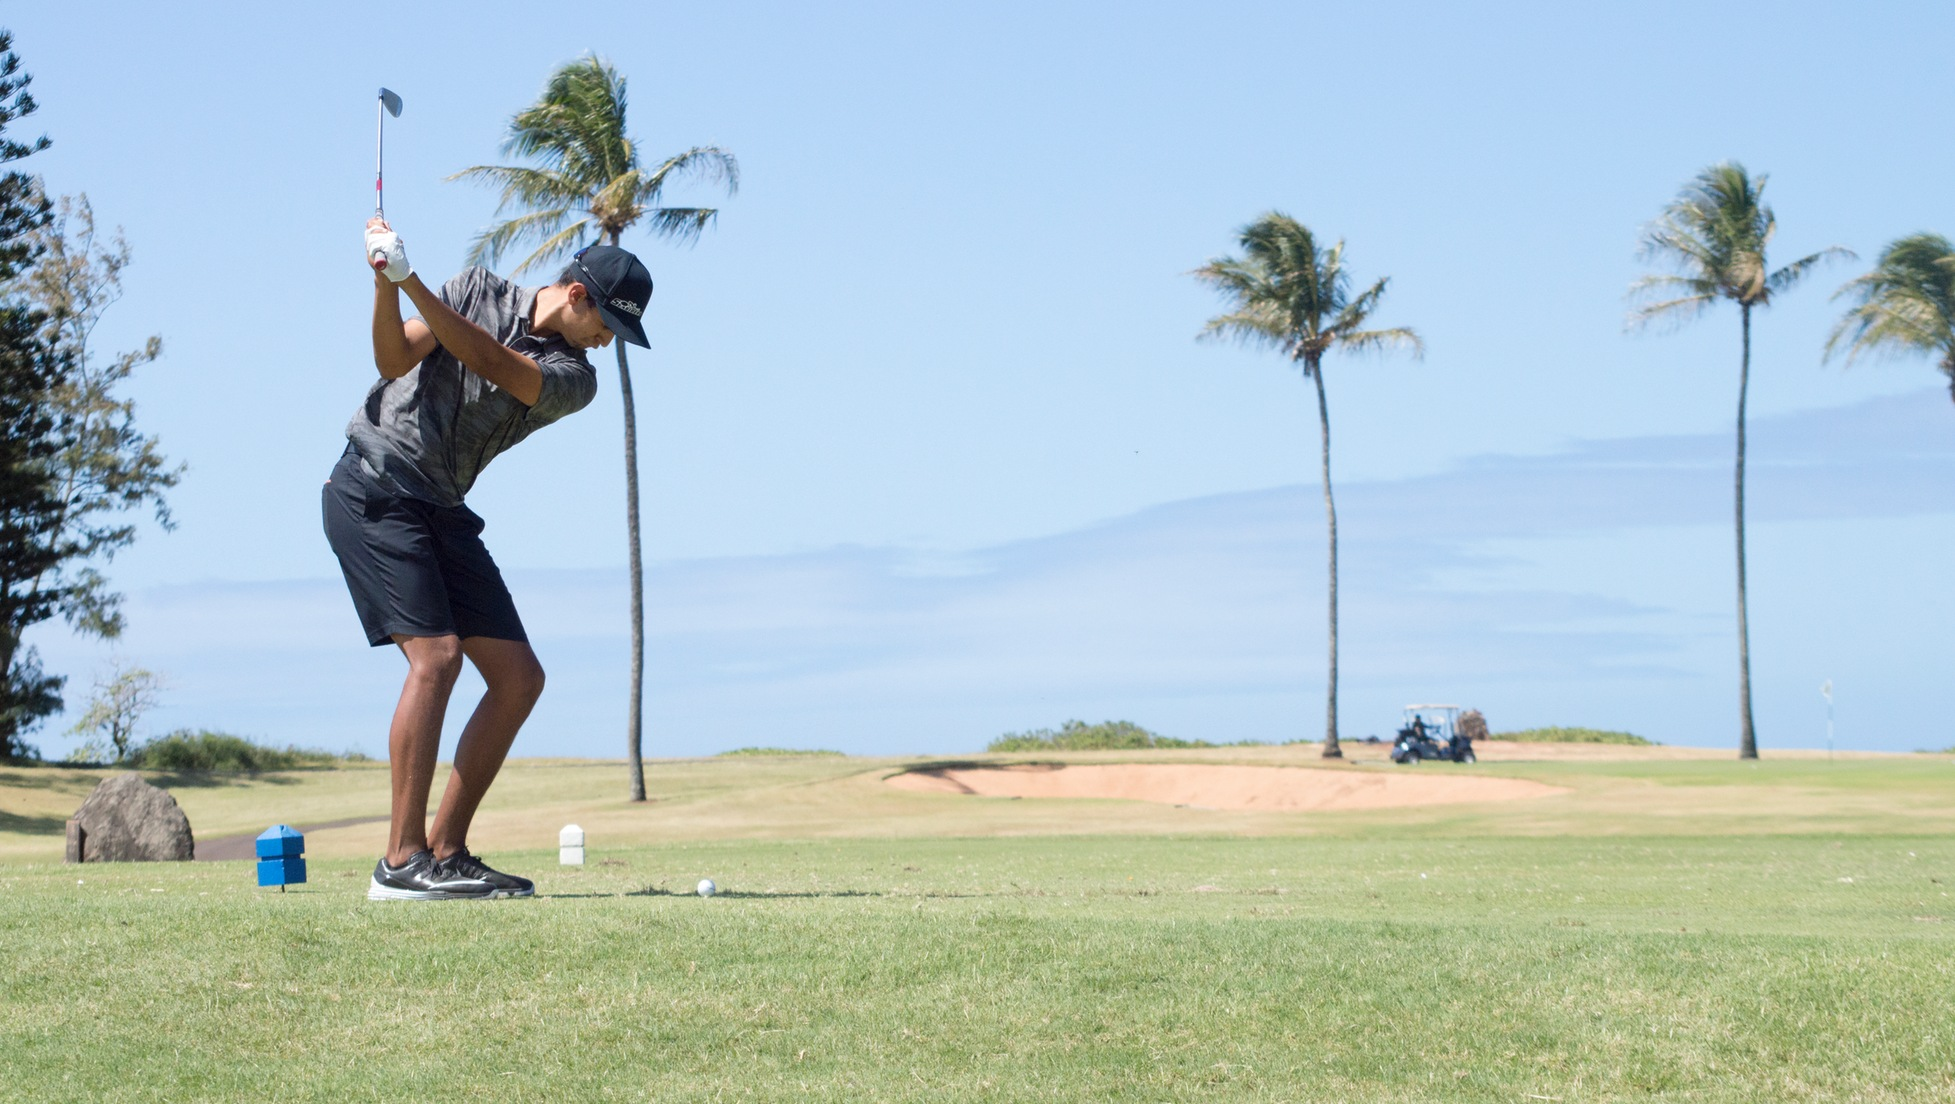 Nicolas Herrera tees off on the 11th hole of the Turtle Bay Resort Fazio Course.